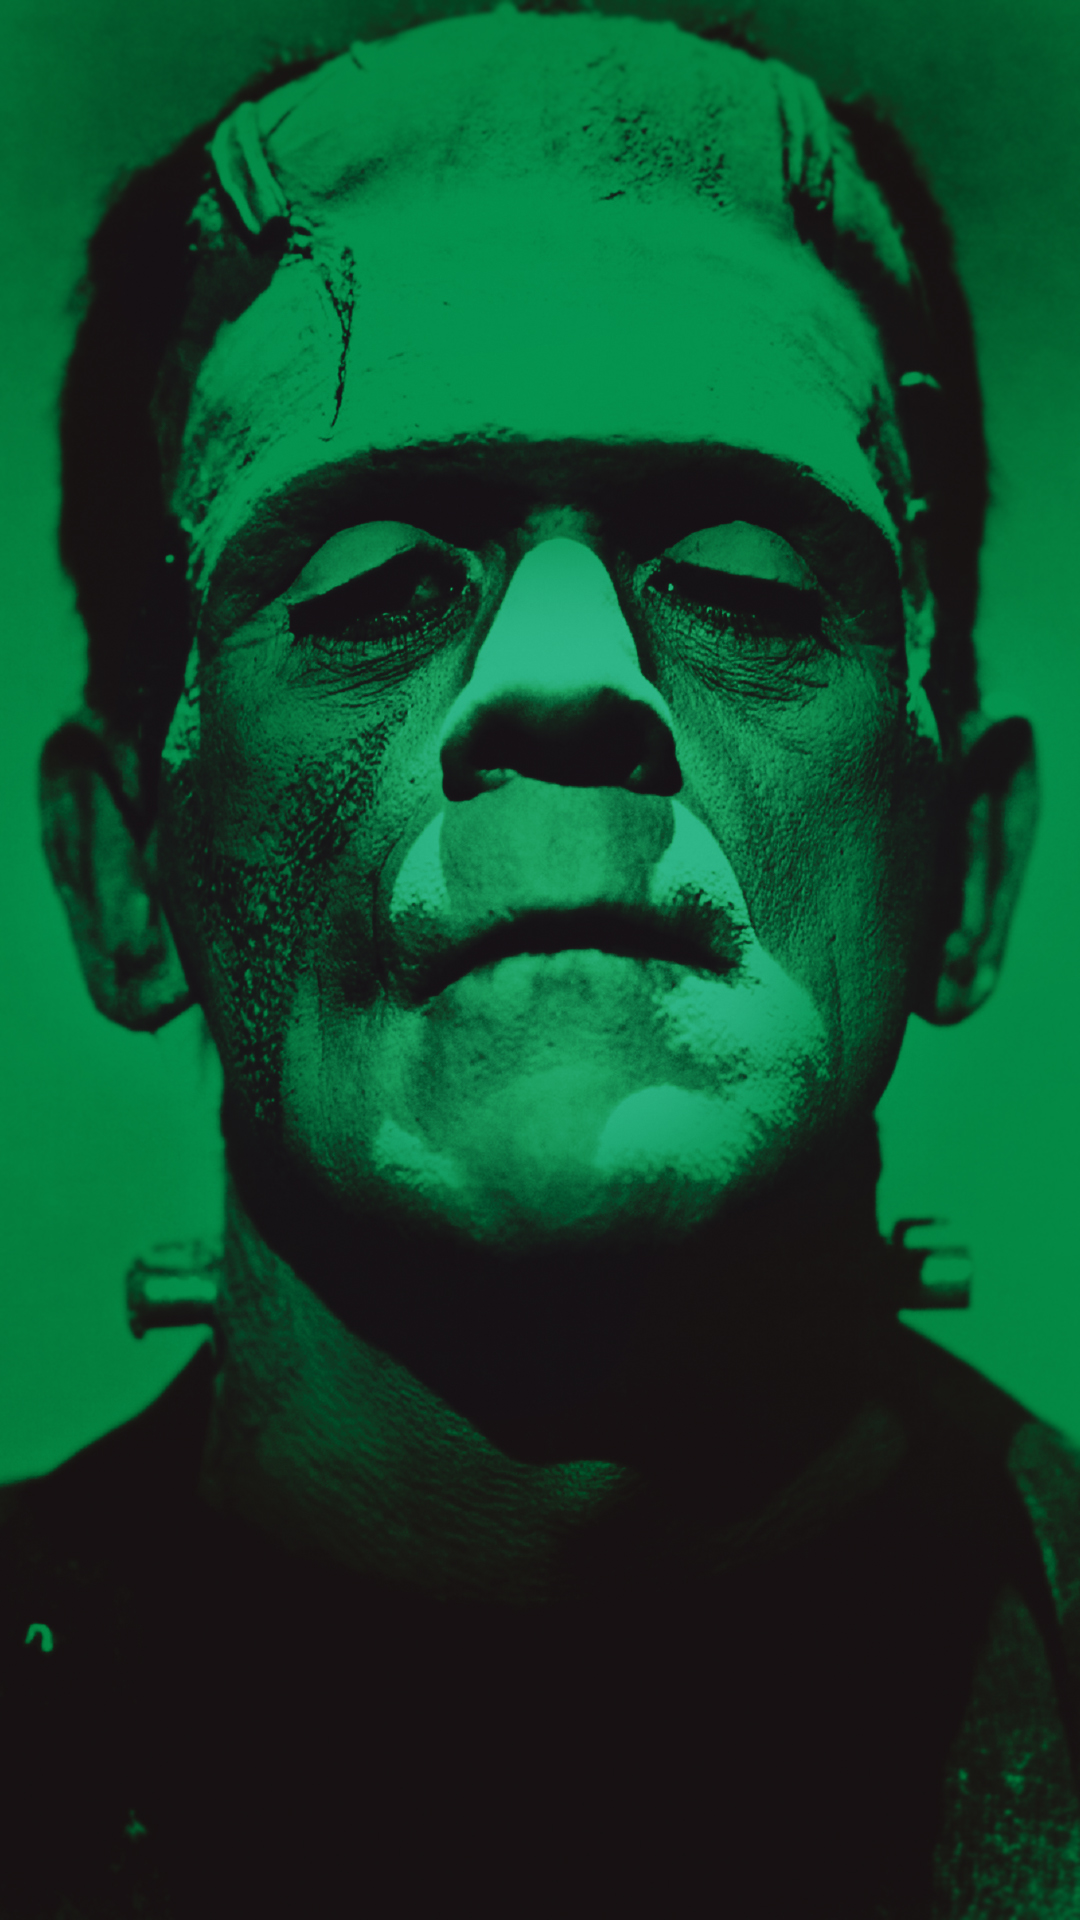 frankenstein 511 quotes from frankenstein: 'nothing is so painful to the human mind as a great and sudden change'.